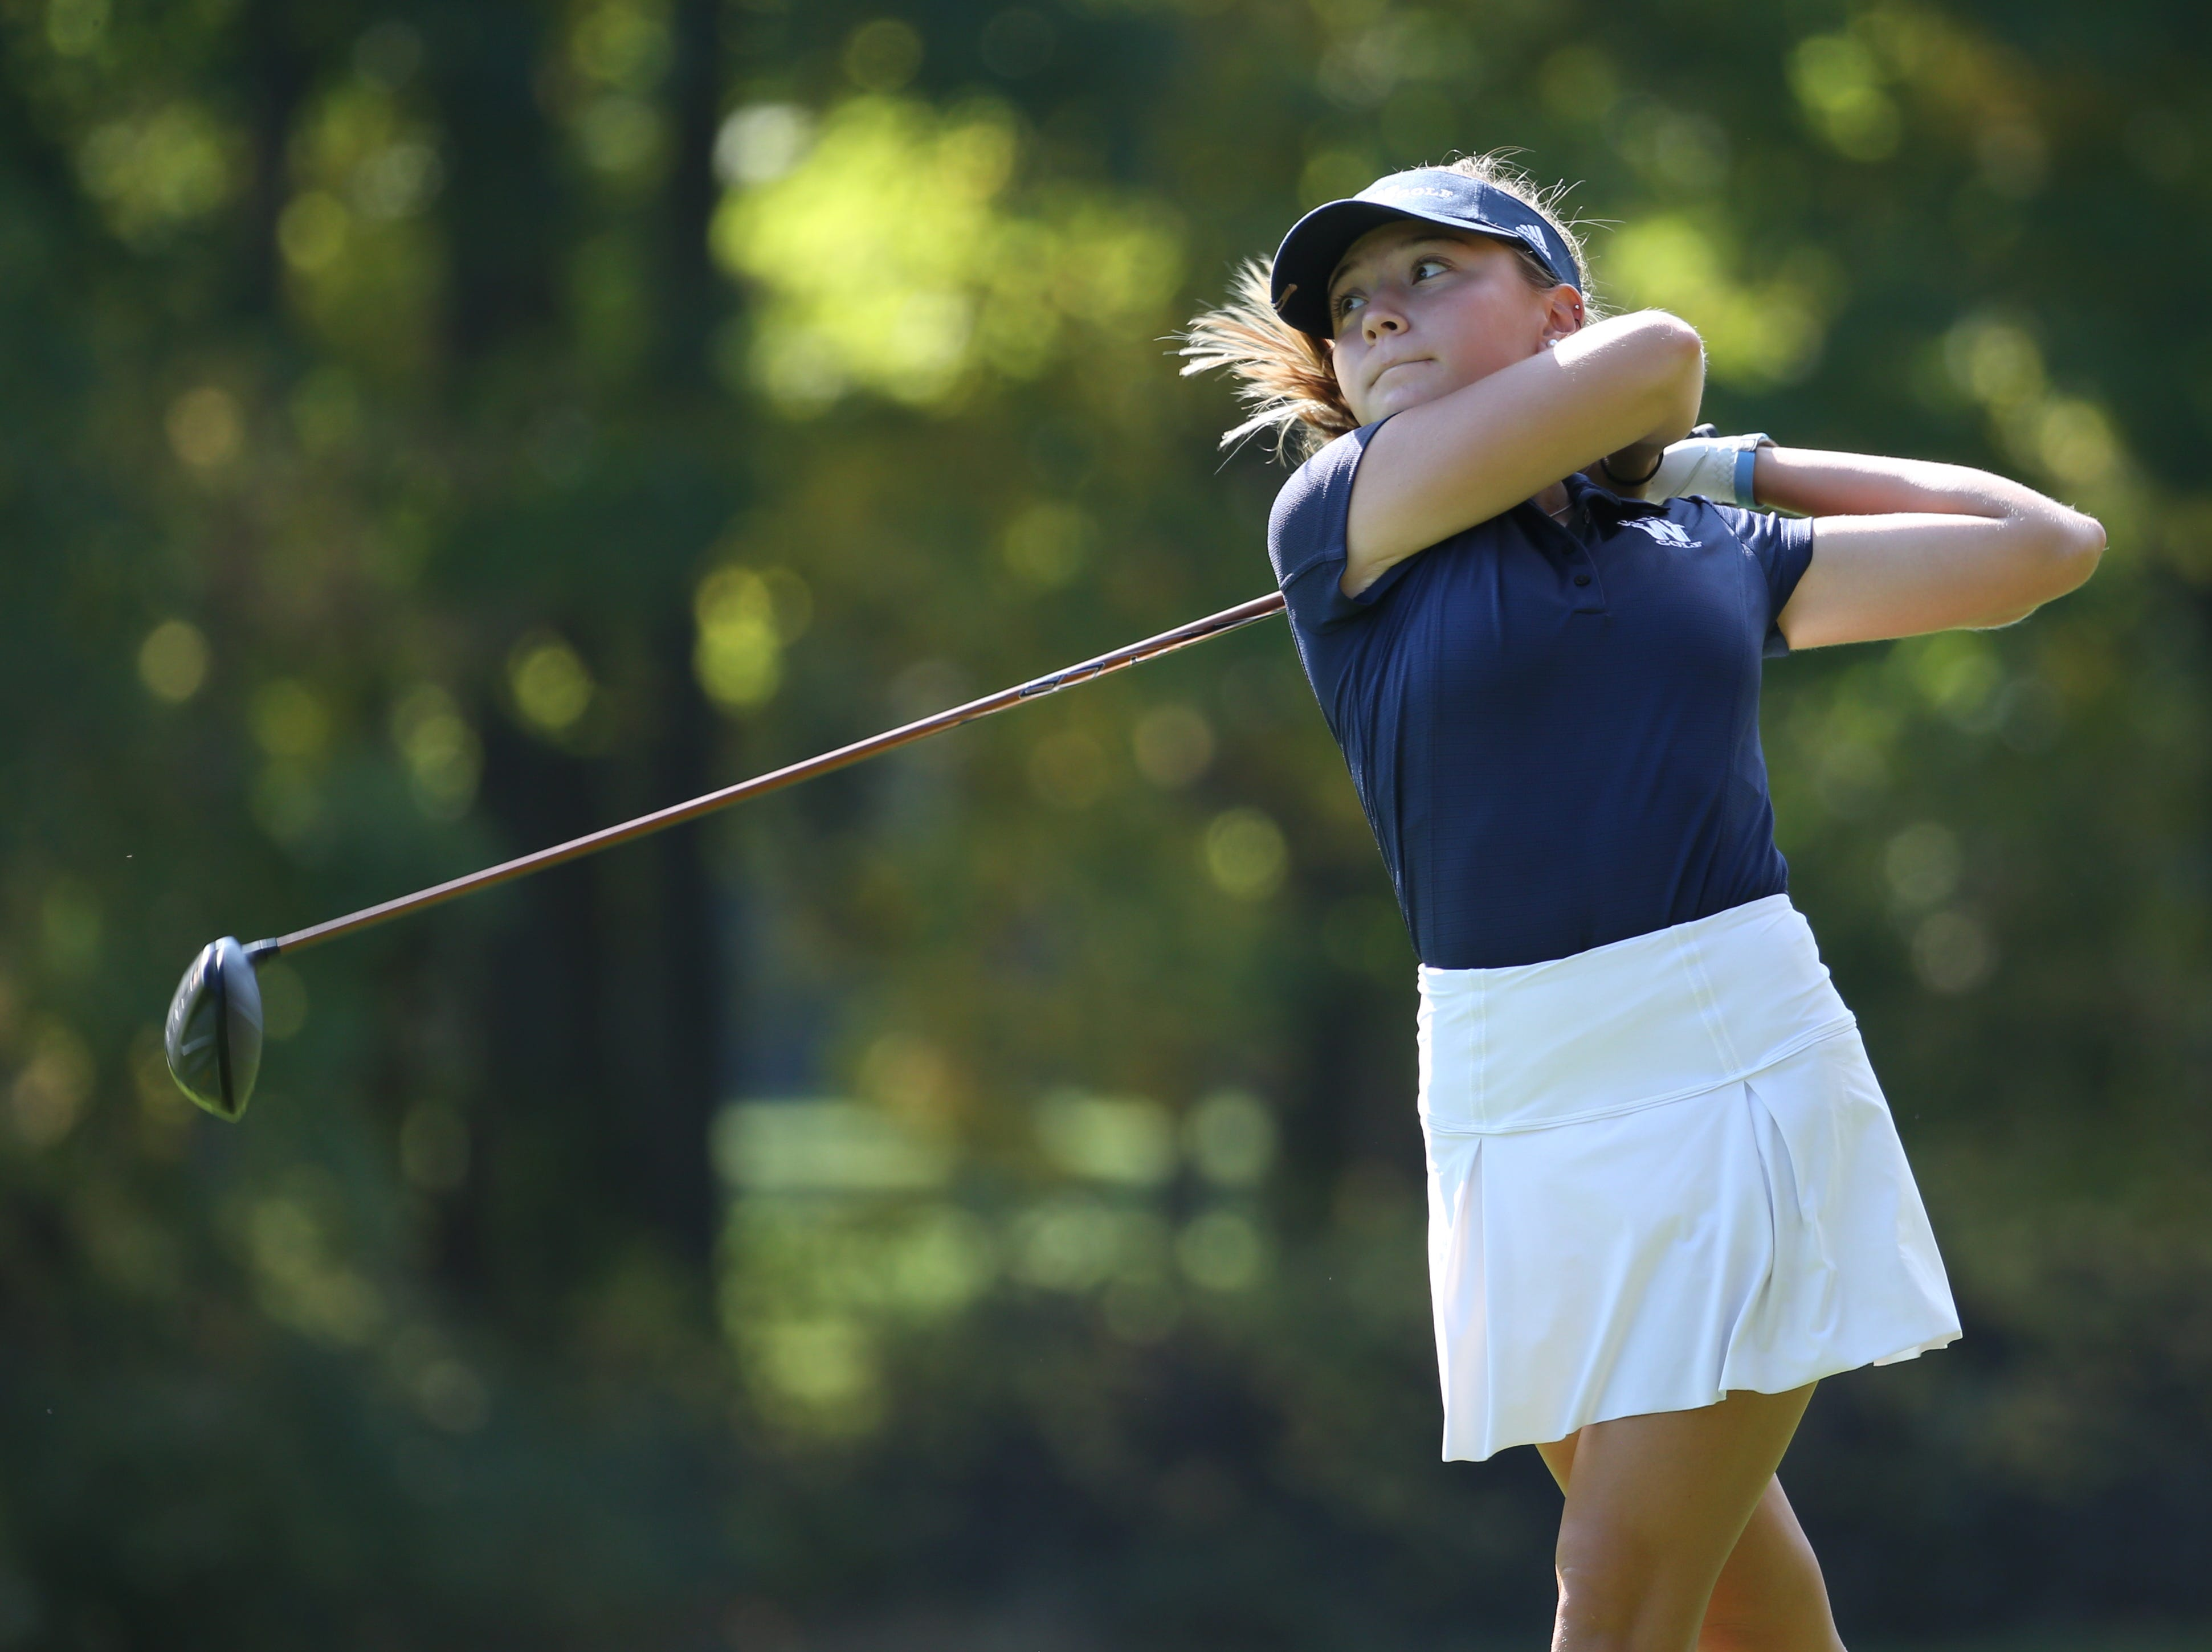 Mikah McDonnell tees off at the sixth hole at the Section V girls golf championship at Deerfield Country Club.